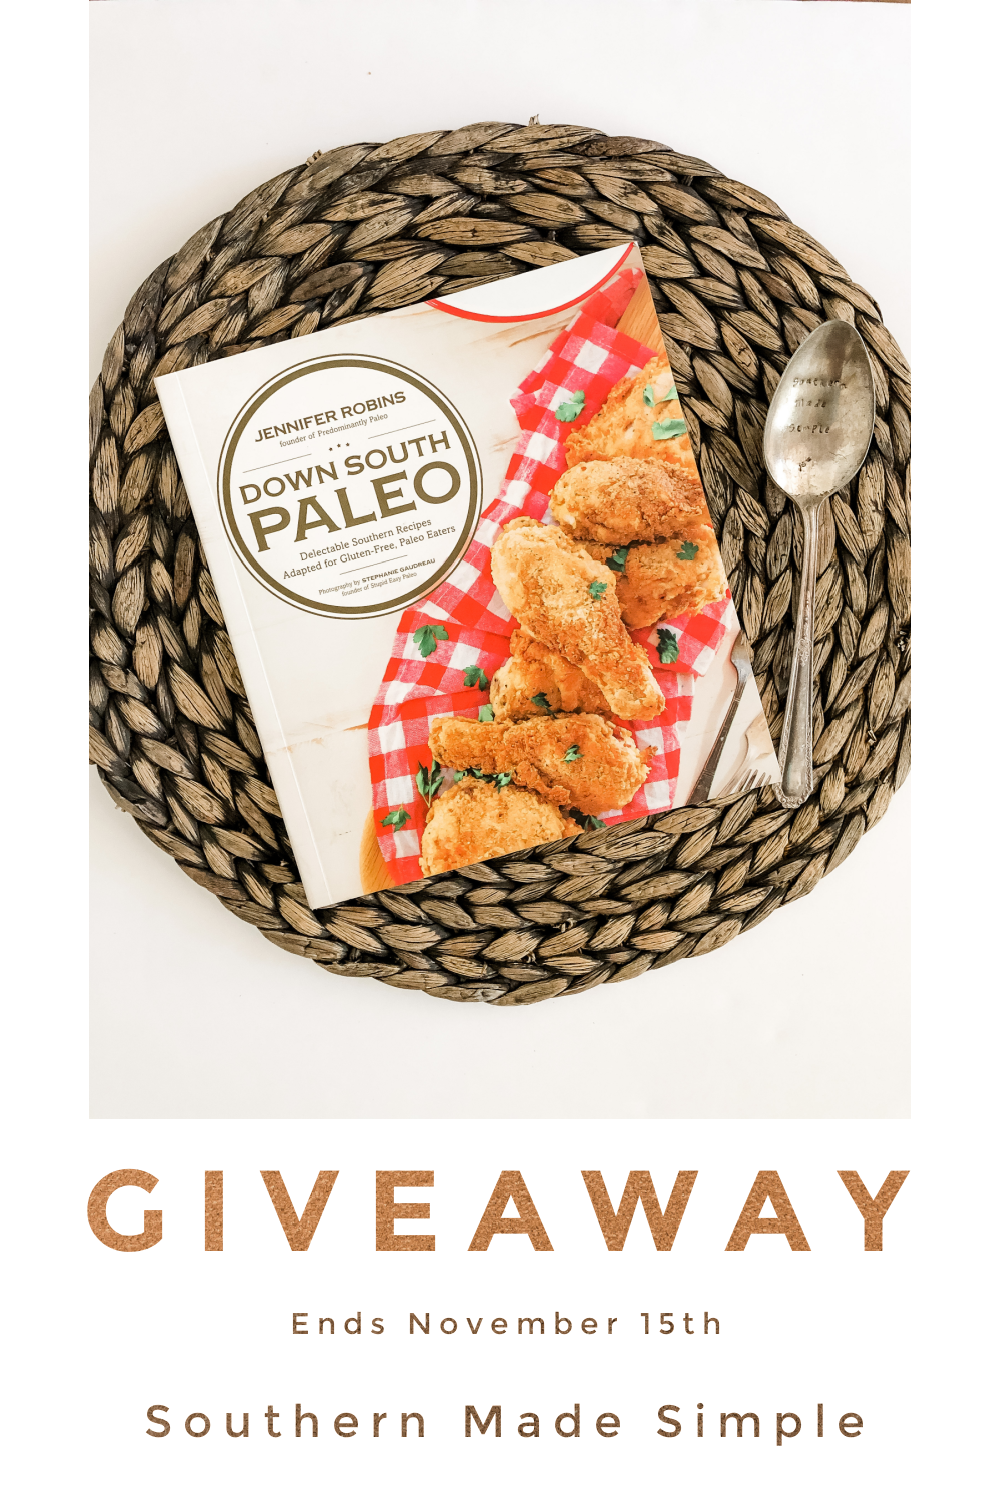 Down South Paleo Cookbook Giveaway!